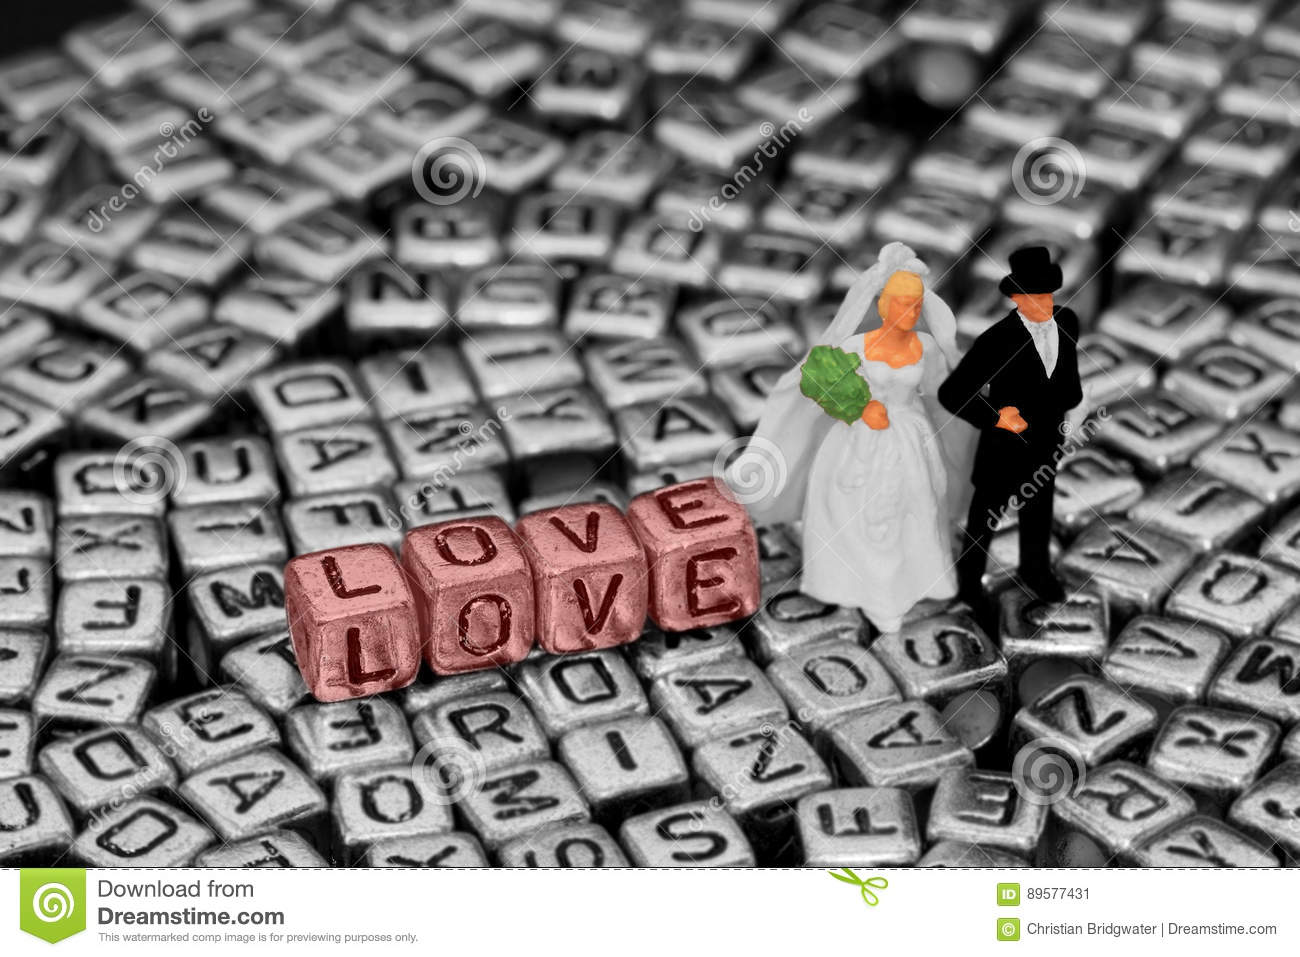 model wedding couple standing on letter jewellery beads